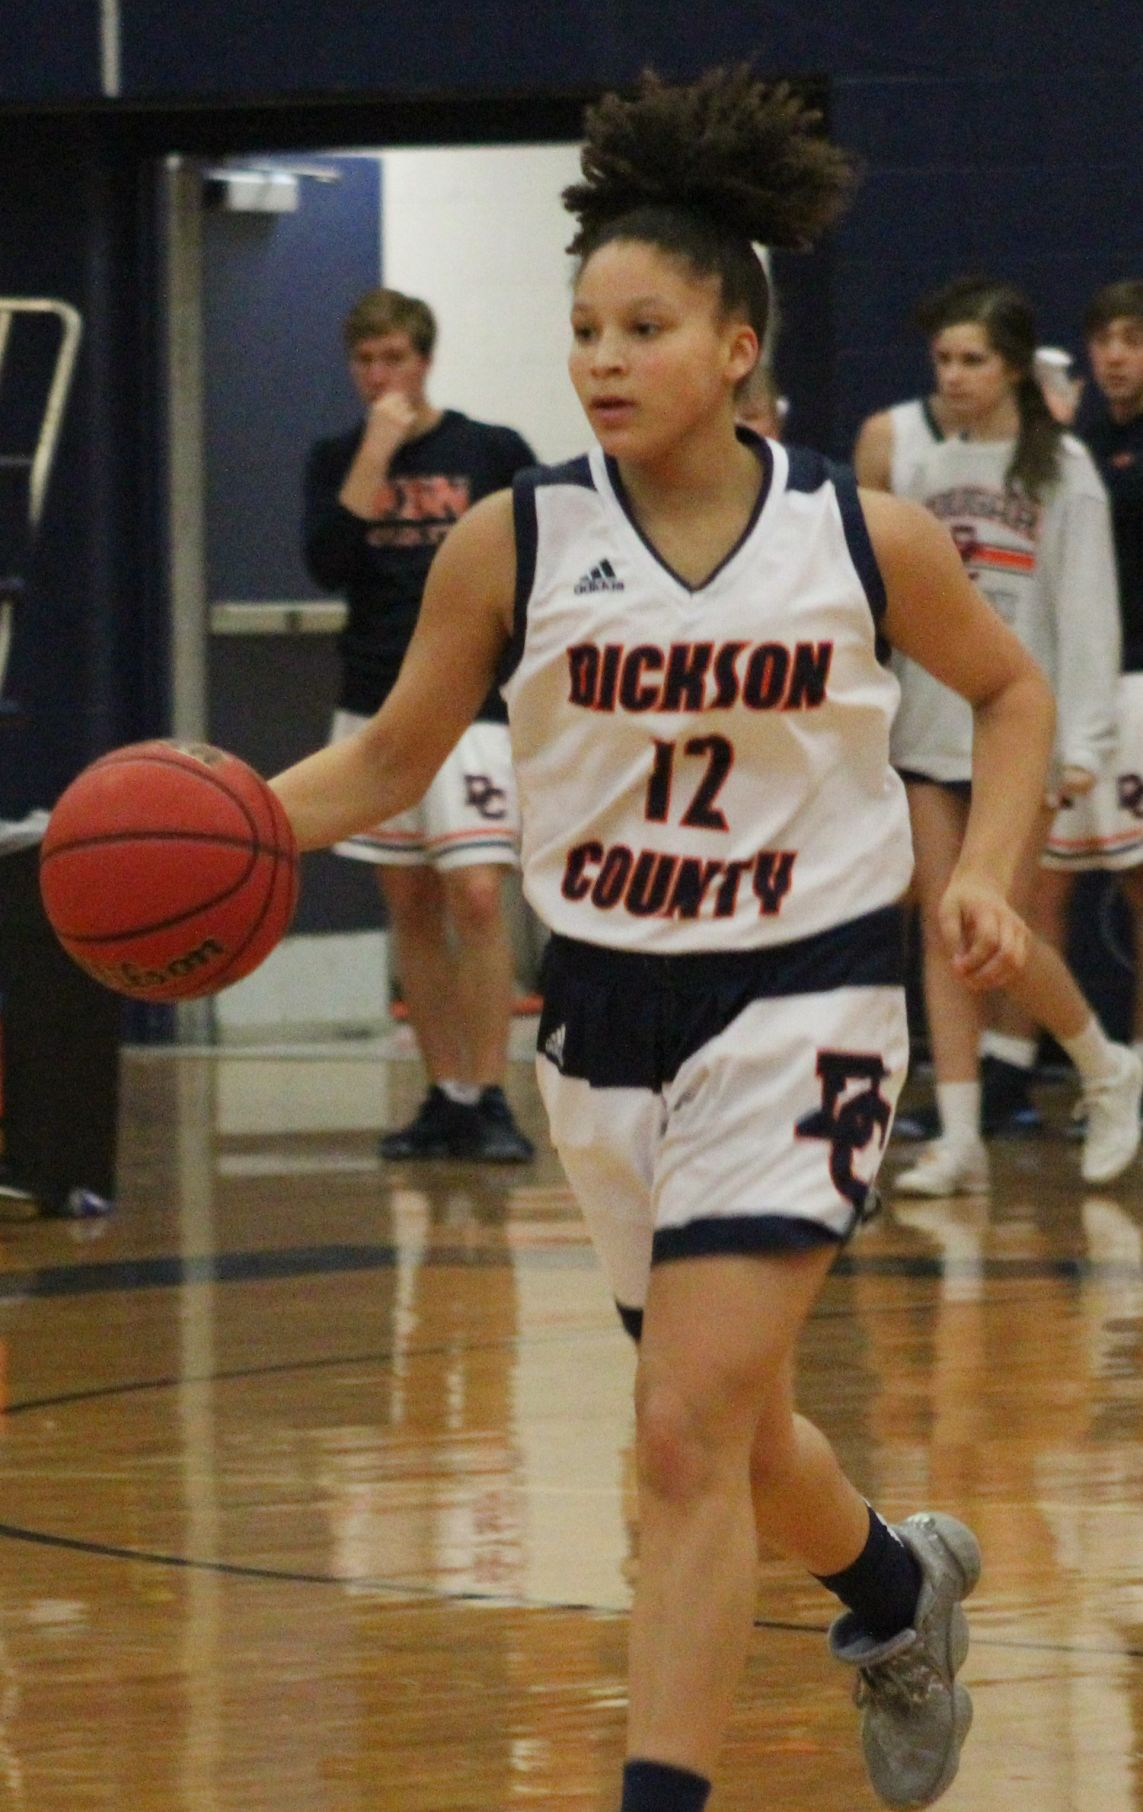 Ashley Jackson brings the ball up the court (Picture by Cameron Klotz).JPG